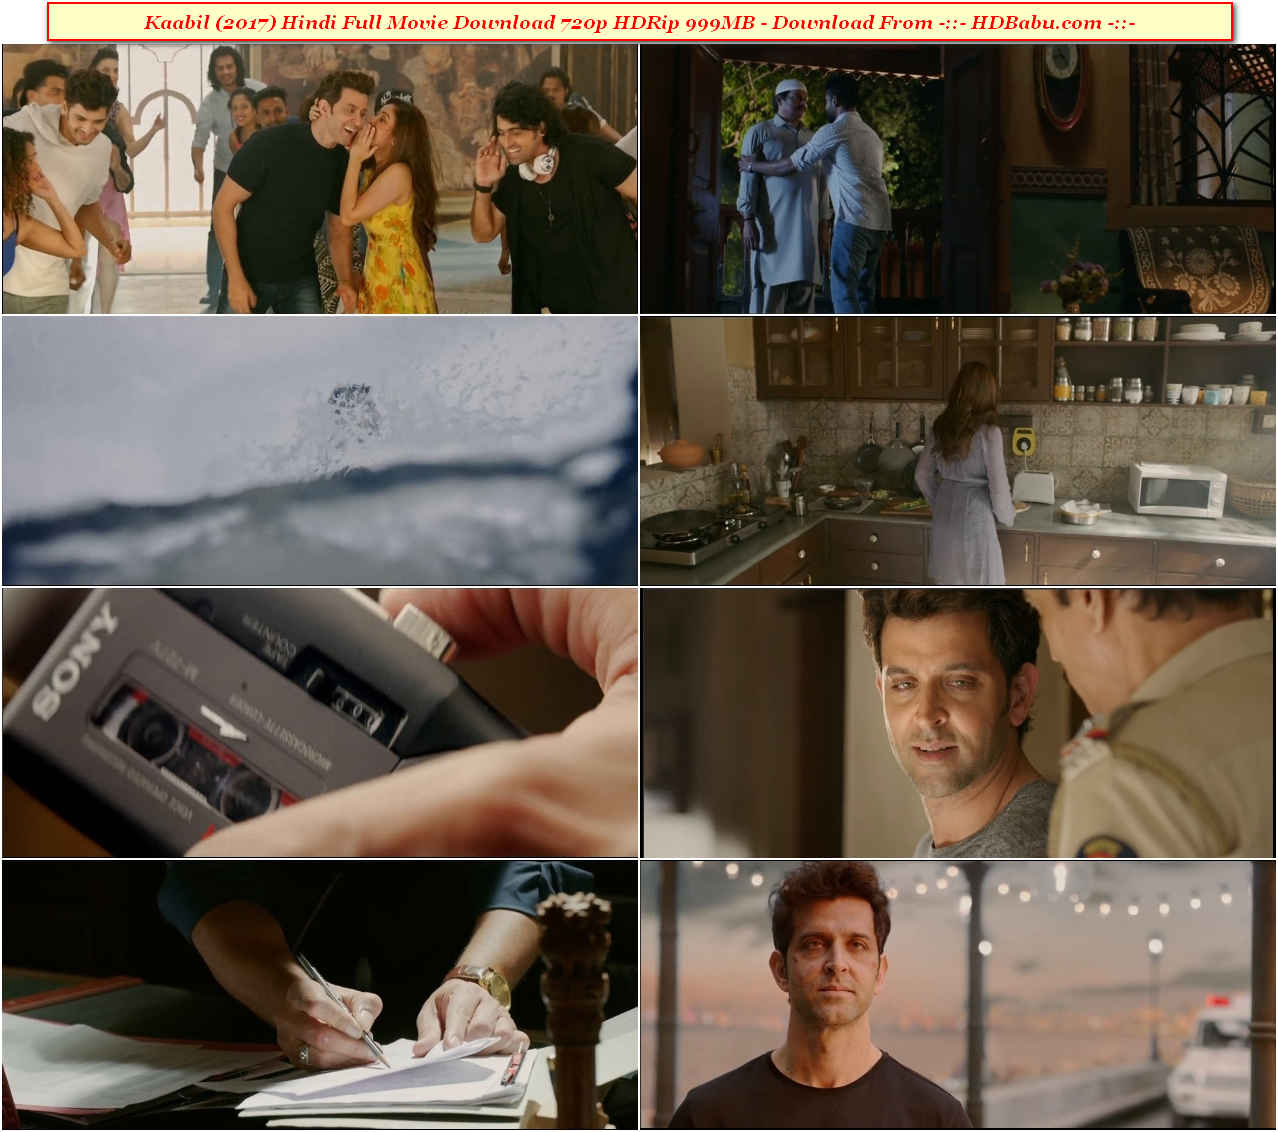 Kaabil Full Movie Download, Kaabil HEVC Mobile Movie Download HD – And Also Download Free Kaabil (2017) Hindi Full Movie HD. You can also Download Kaabil Full Movie From High-Speed Download Verified Servers, Available Format HD MKV, AVI, MP4. Kaabil Full Movie Download HD, MKV, AVI, MP4, HEVC Download.